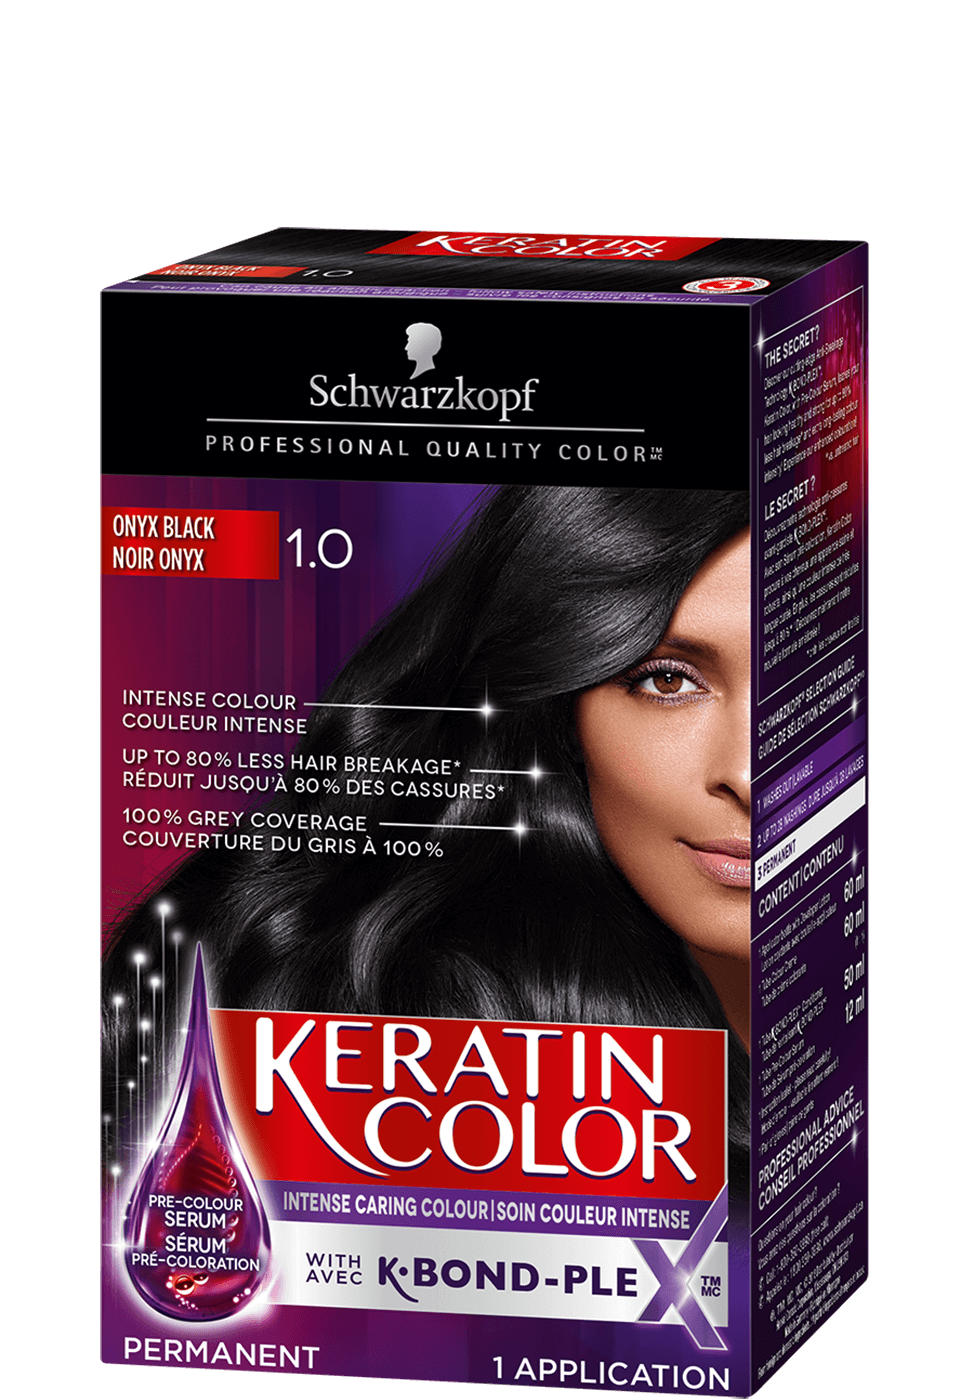 Keratin_Color_en_1_0_970x1400